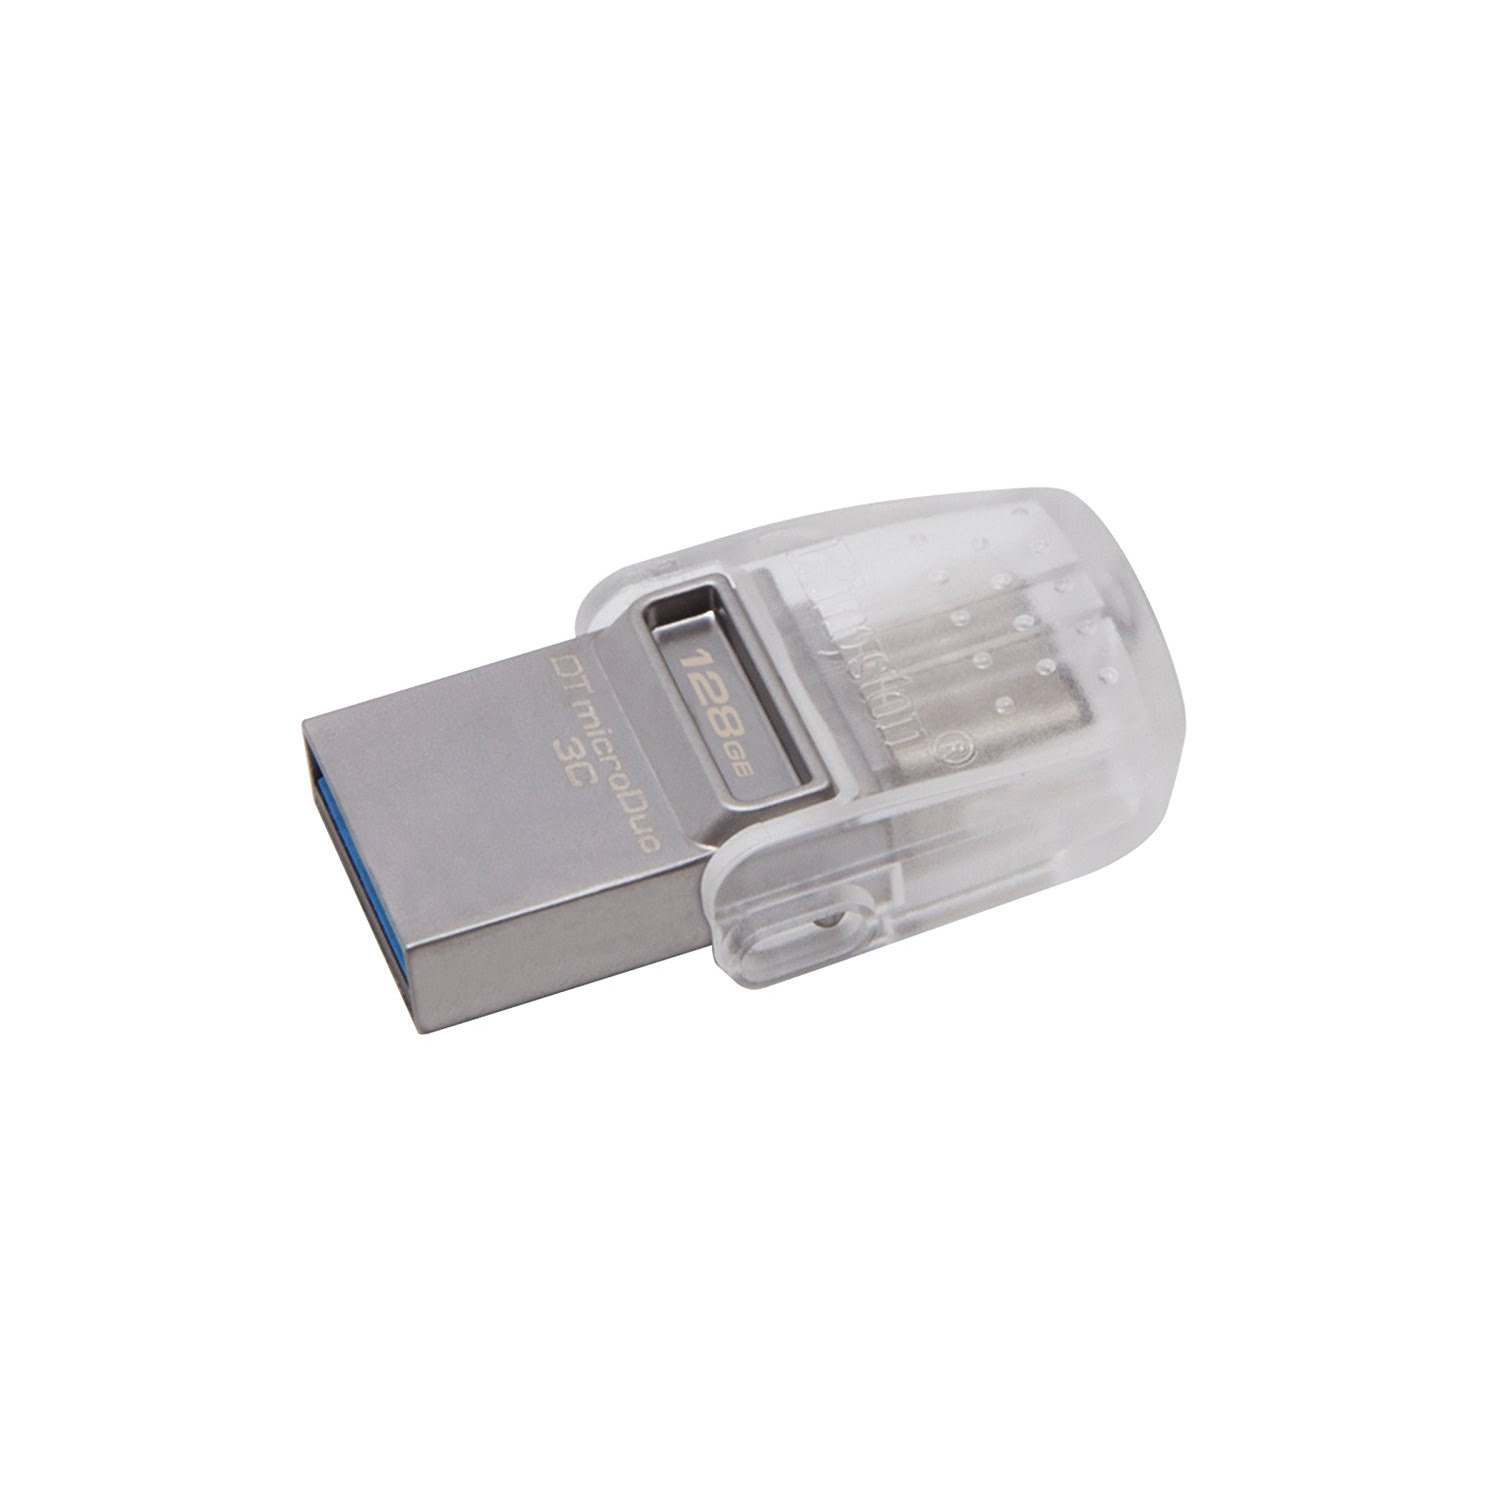 Kingston 128Go USB 3.1 Type C - - Clé USB Kingston - Cybertek.fr - 0